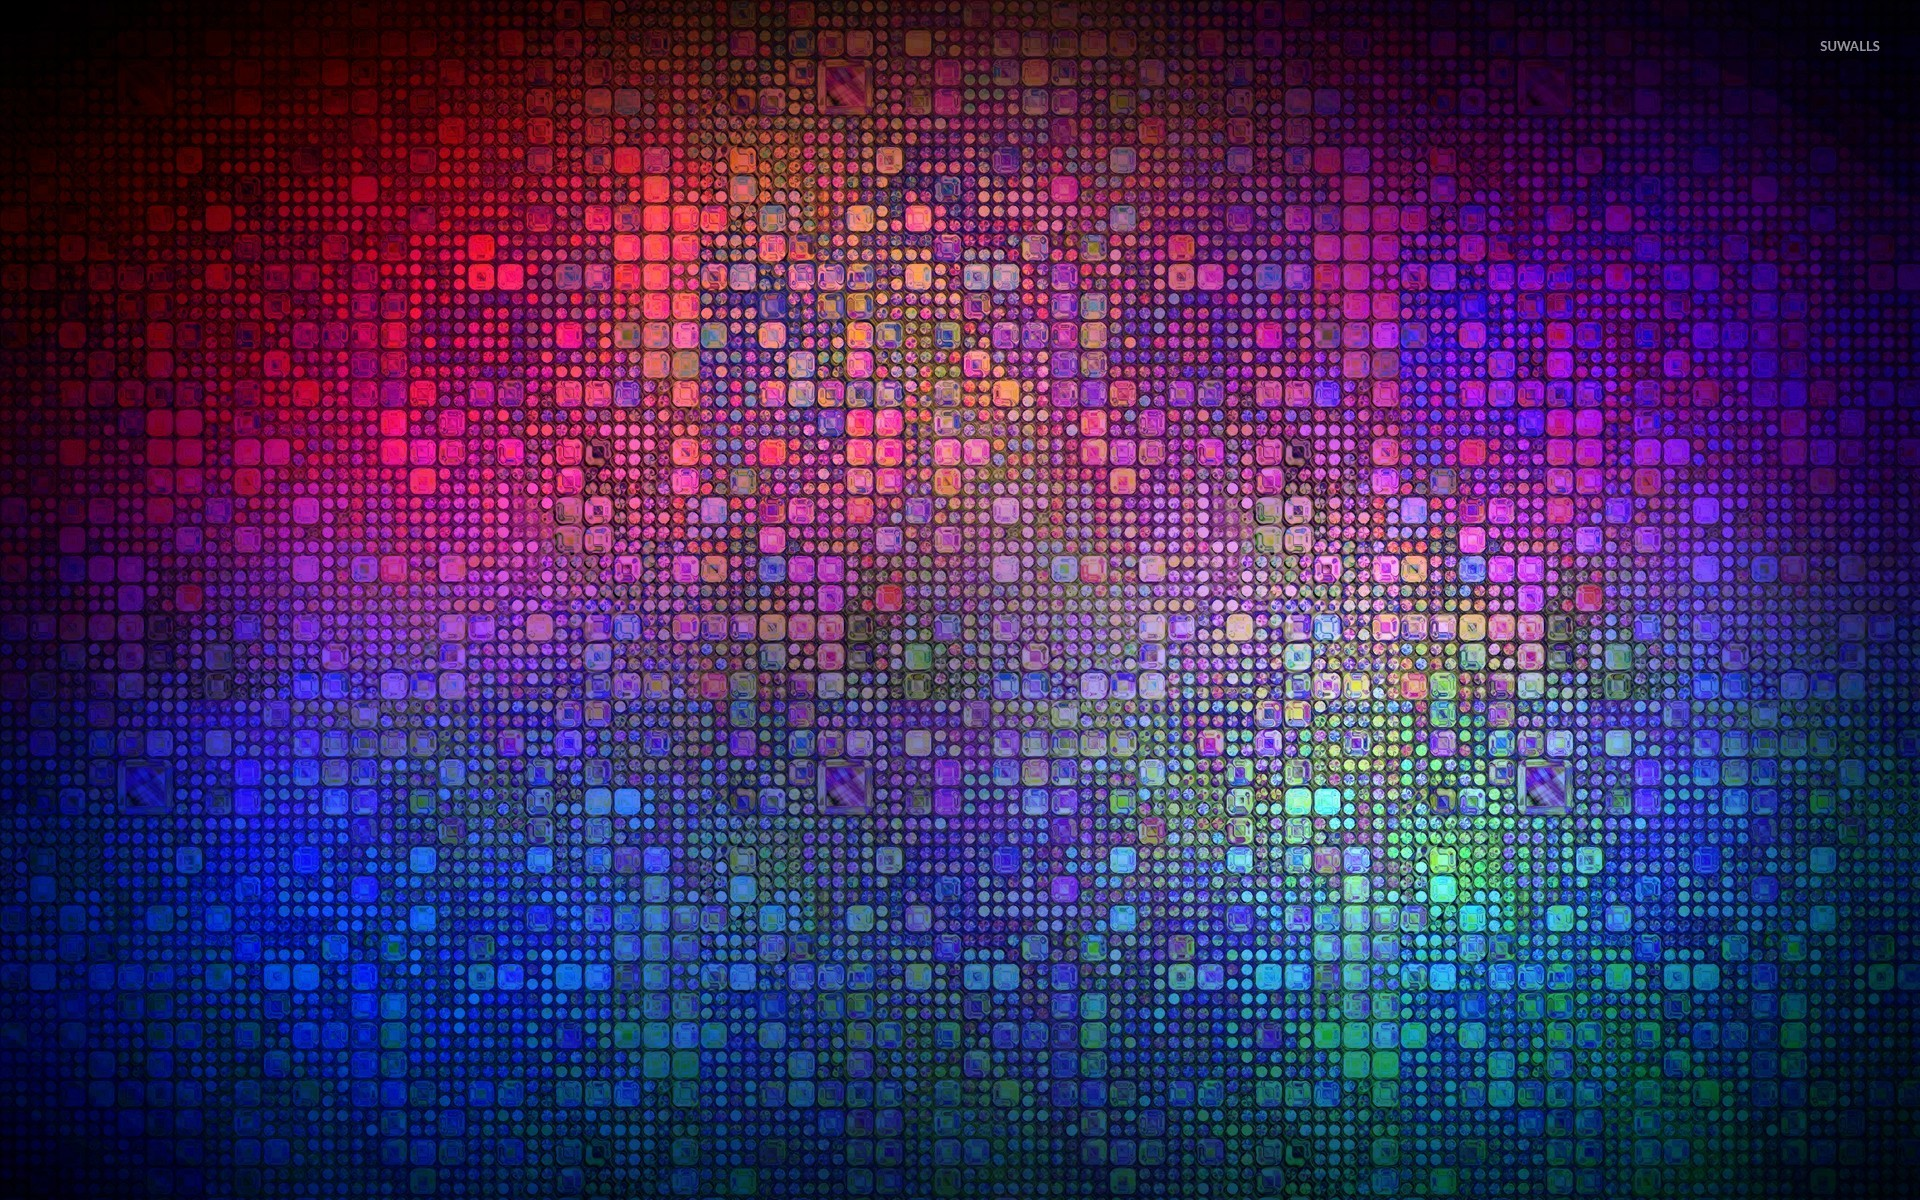 Multicolored mosaic wallpaper abstract wallpapers 26924 for Mosaic wallpaper for walls